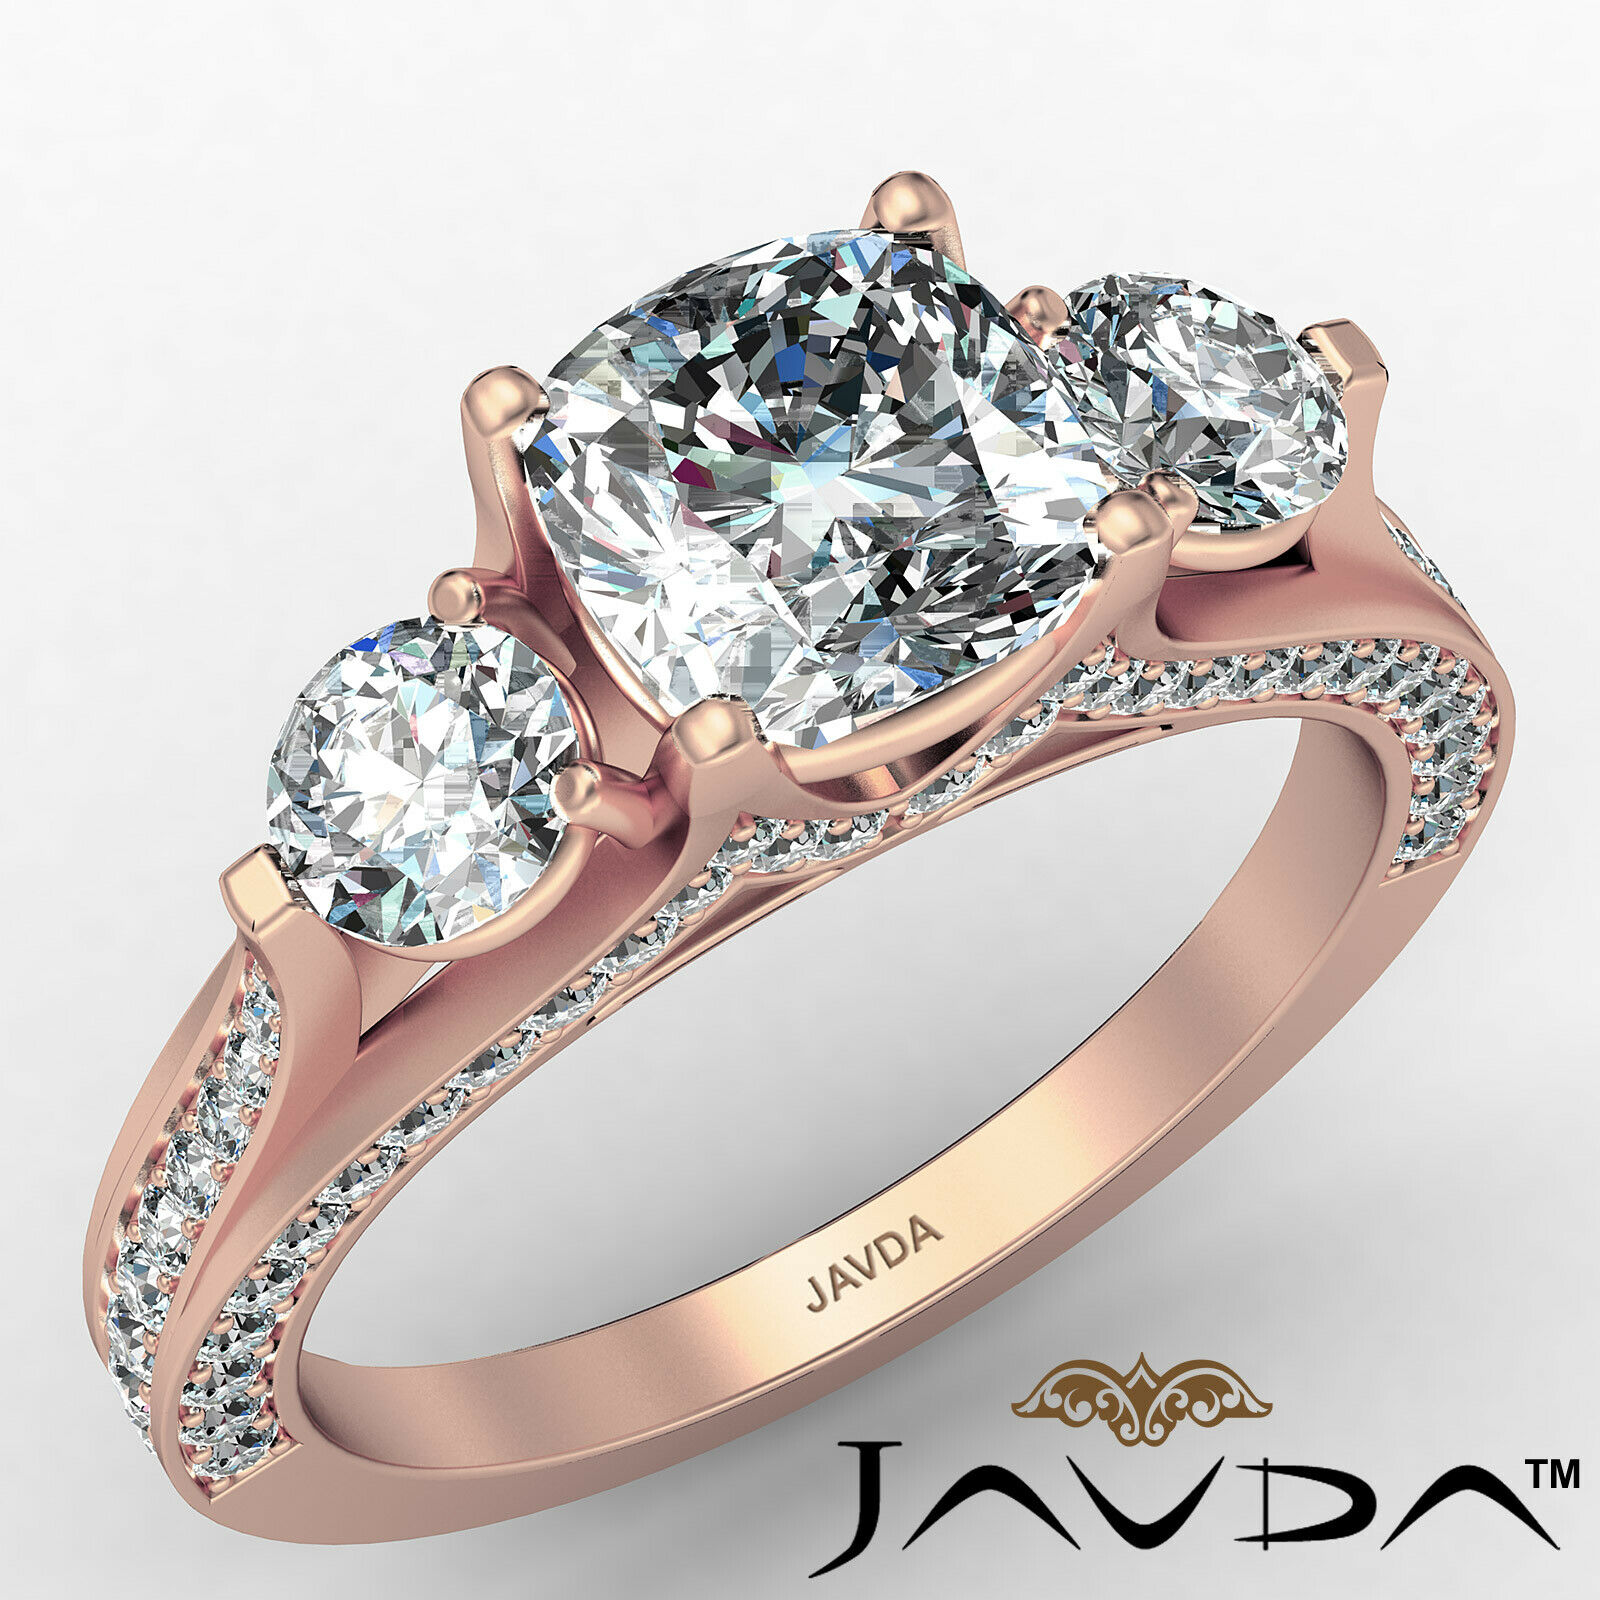 Cushion Diamond Engagement Ring Certified by GIA E Color & VVS1 clarity 2.1 ctw 2